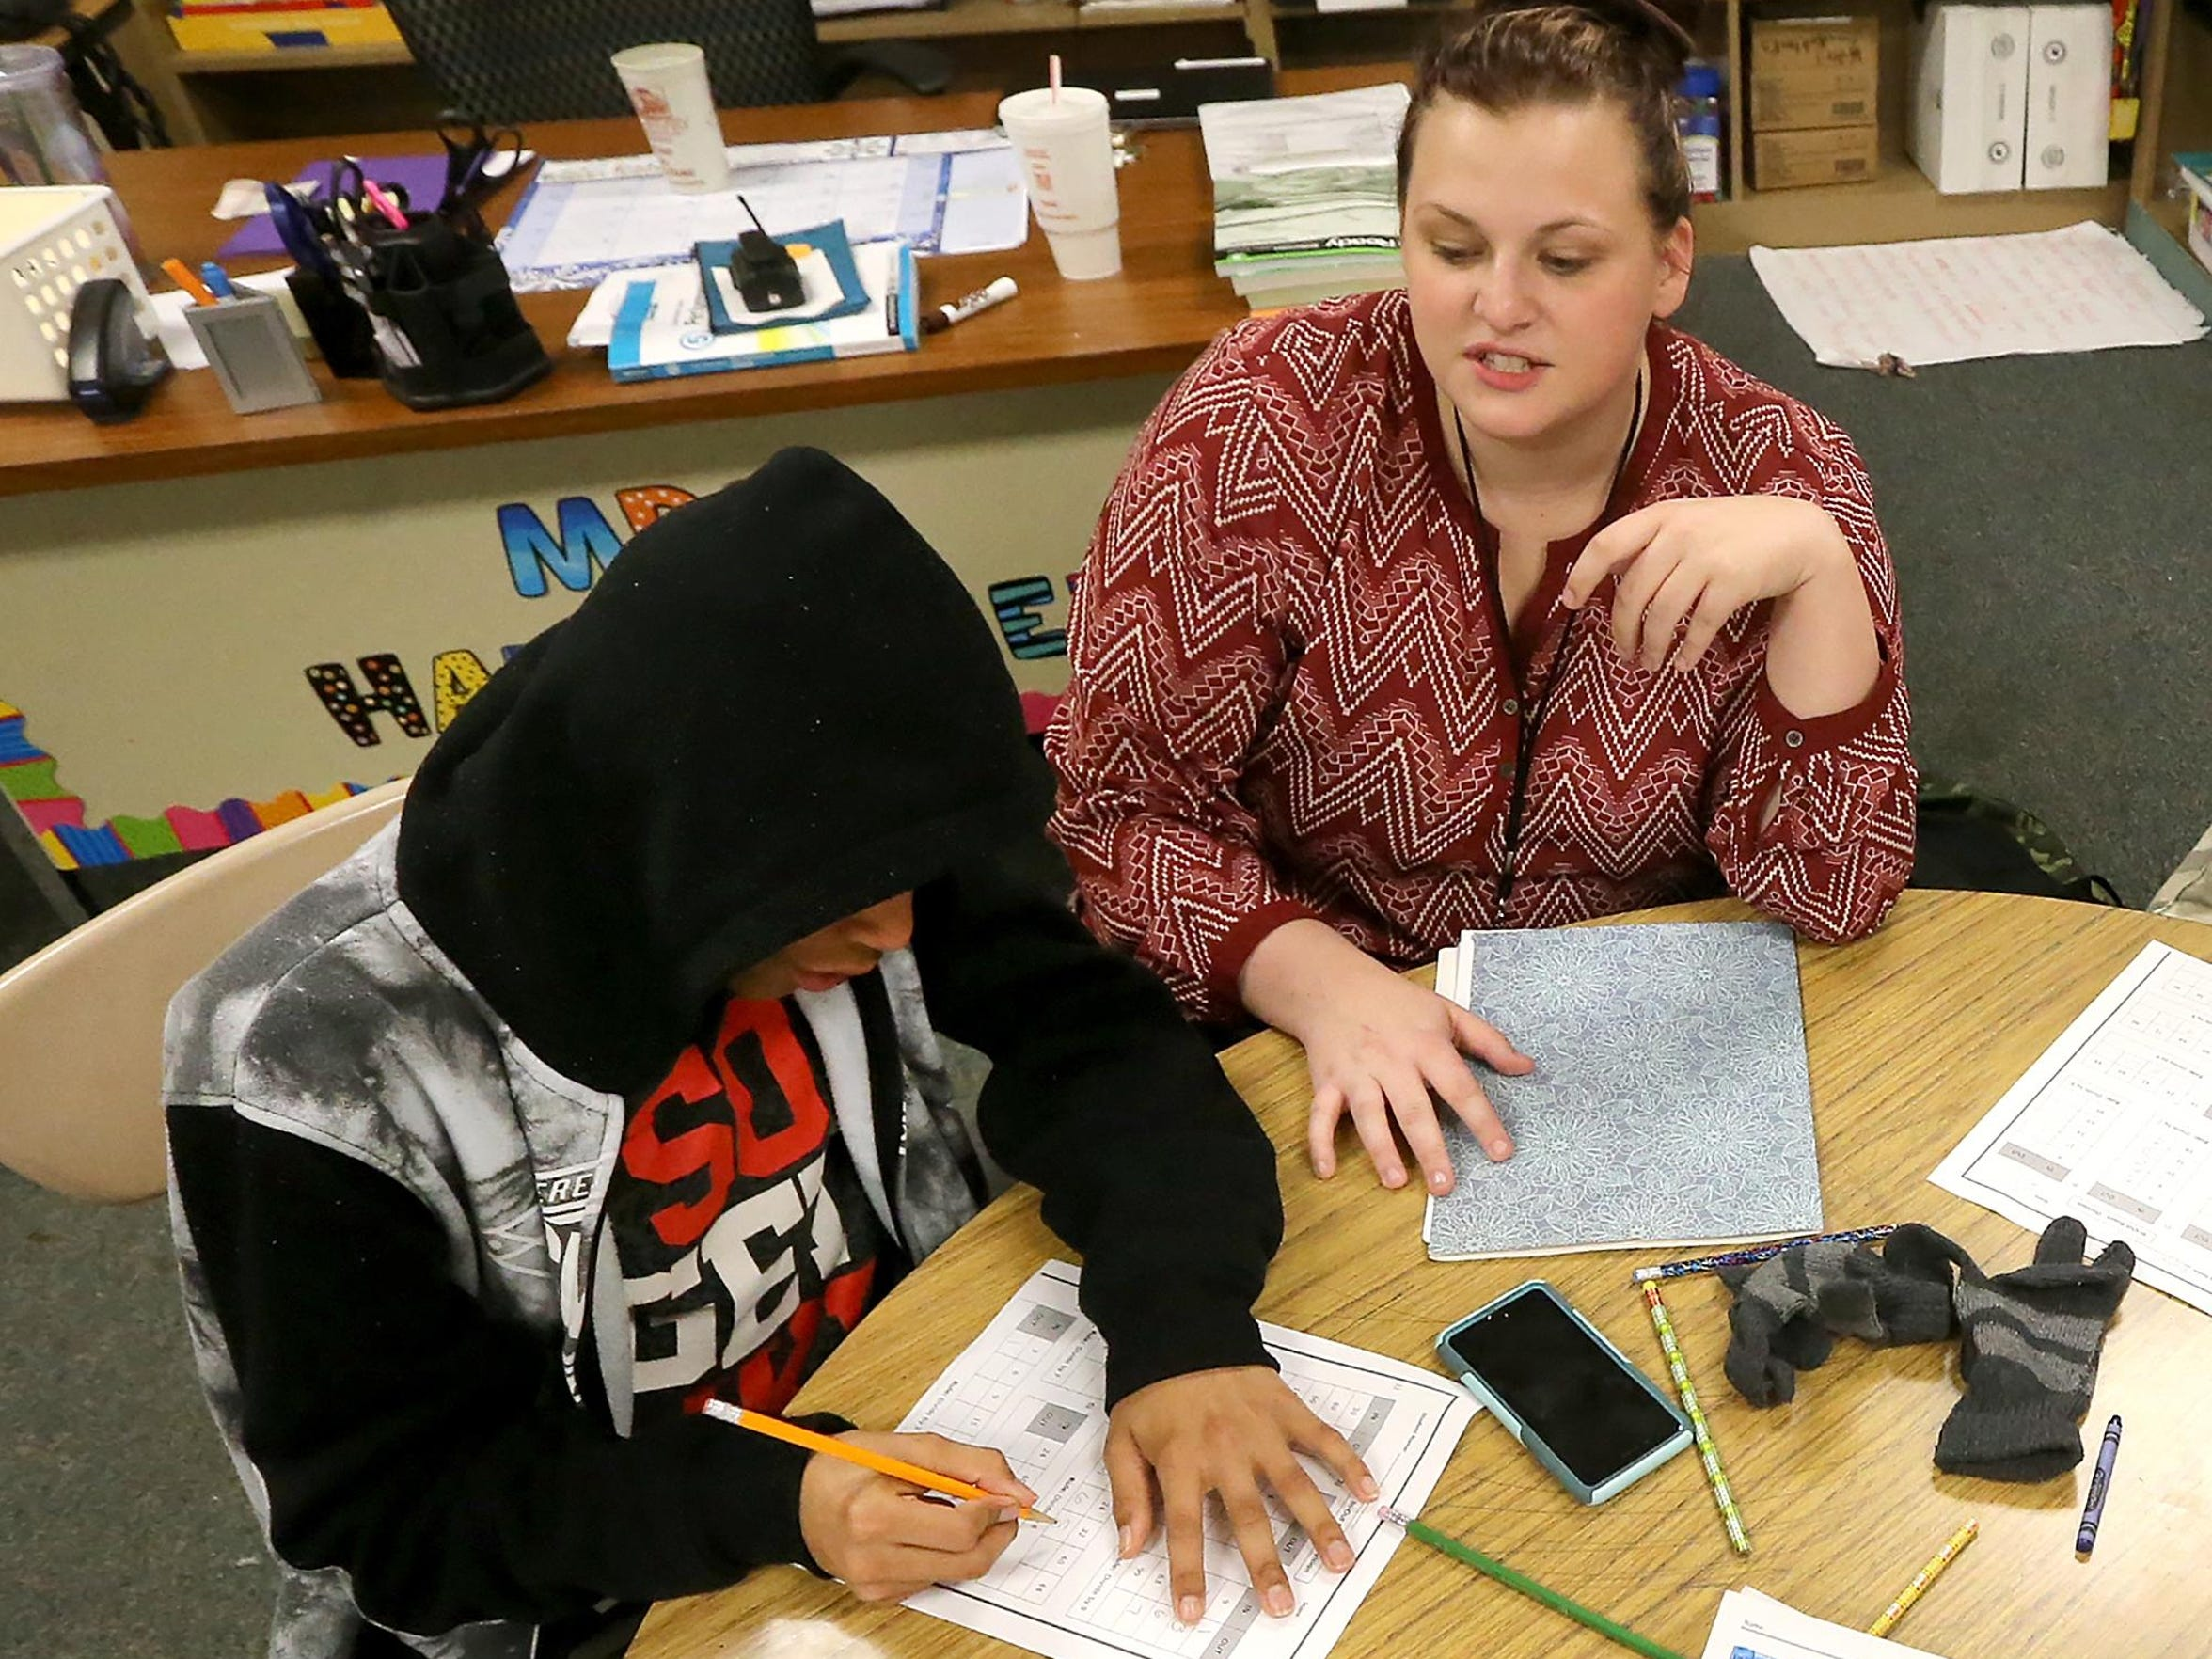 Cortney Cagle, right, a tutoring coordinator at Bradley Academy, helps Damien Malone with a math worksheet during the Bradley Academy After School Tutoring Program on Friday, Jan. 8, 2016.